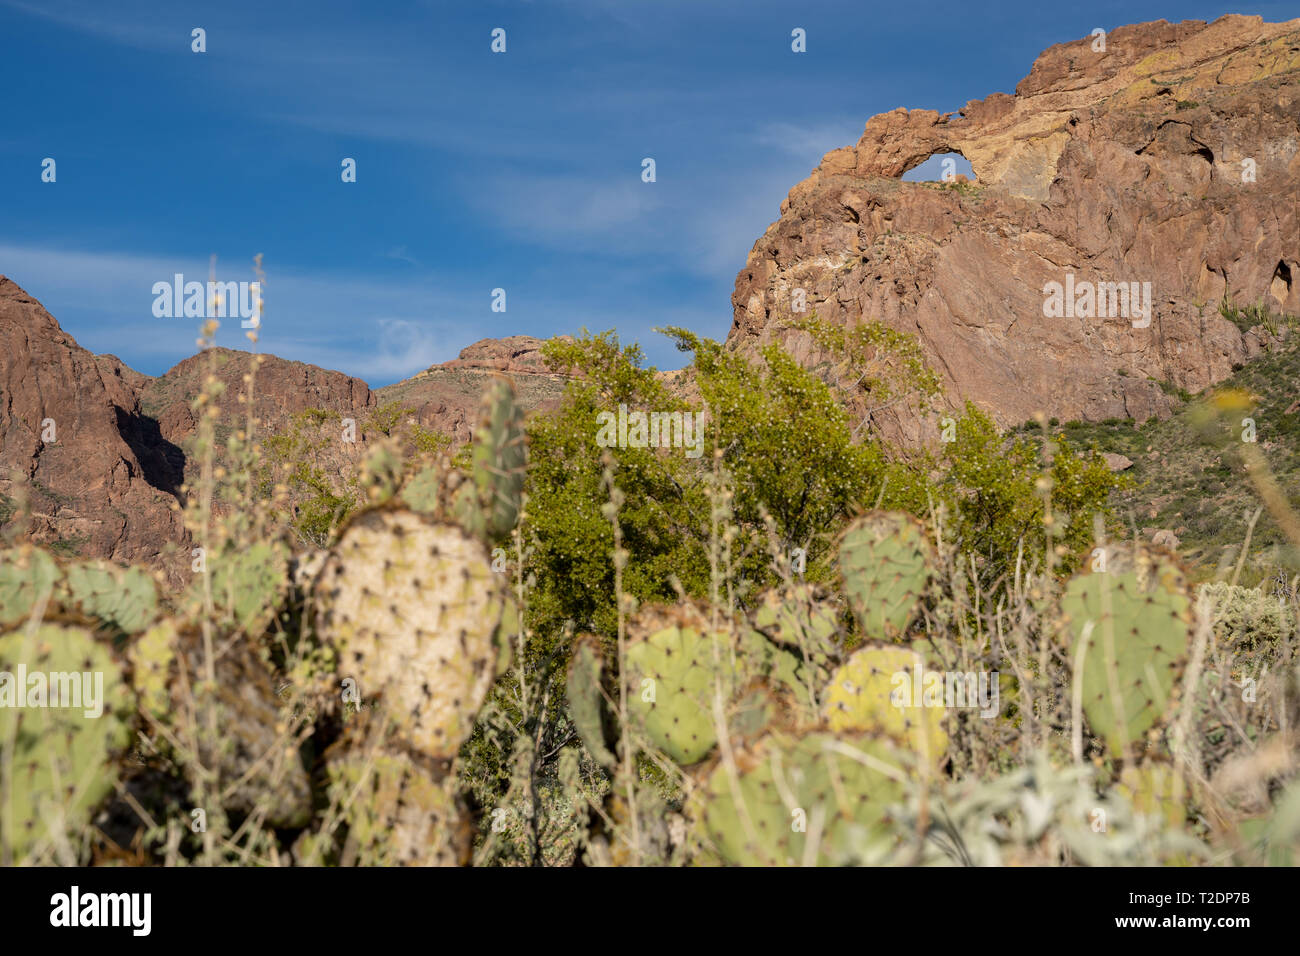 Arch Canyon along Ajo Mountain Drive in Organ Pipe Cactus National Monument in Arizona. Beavertail cactus defocused in foreground - Stock Image